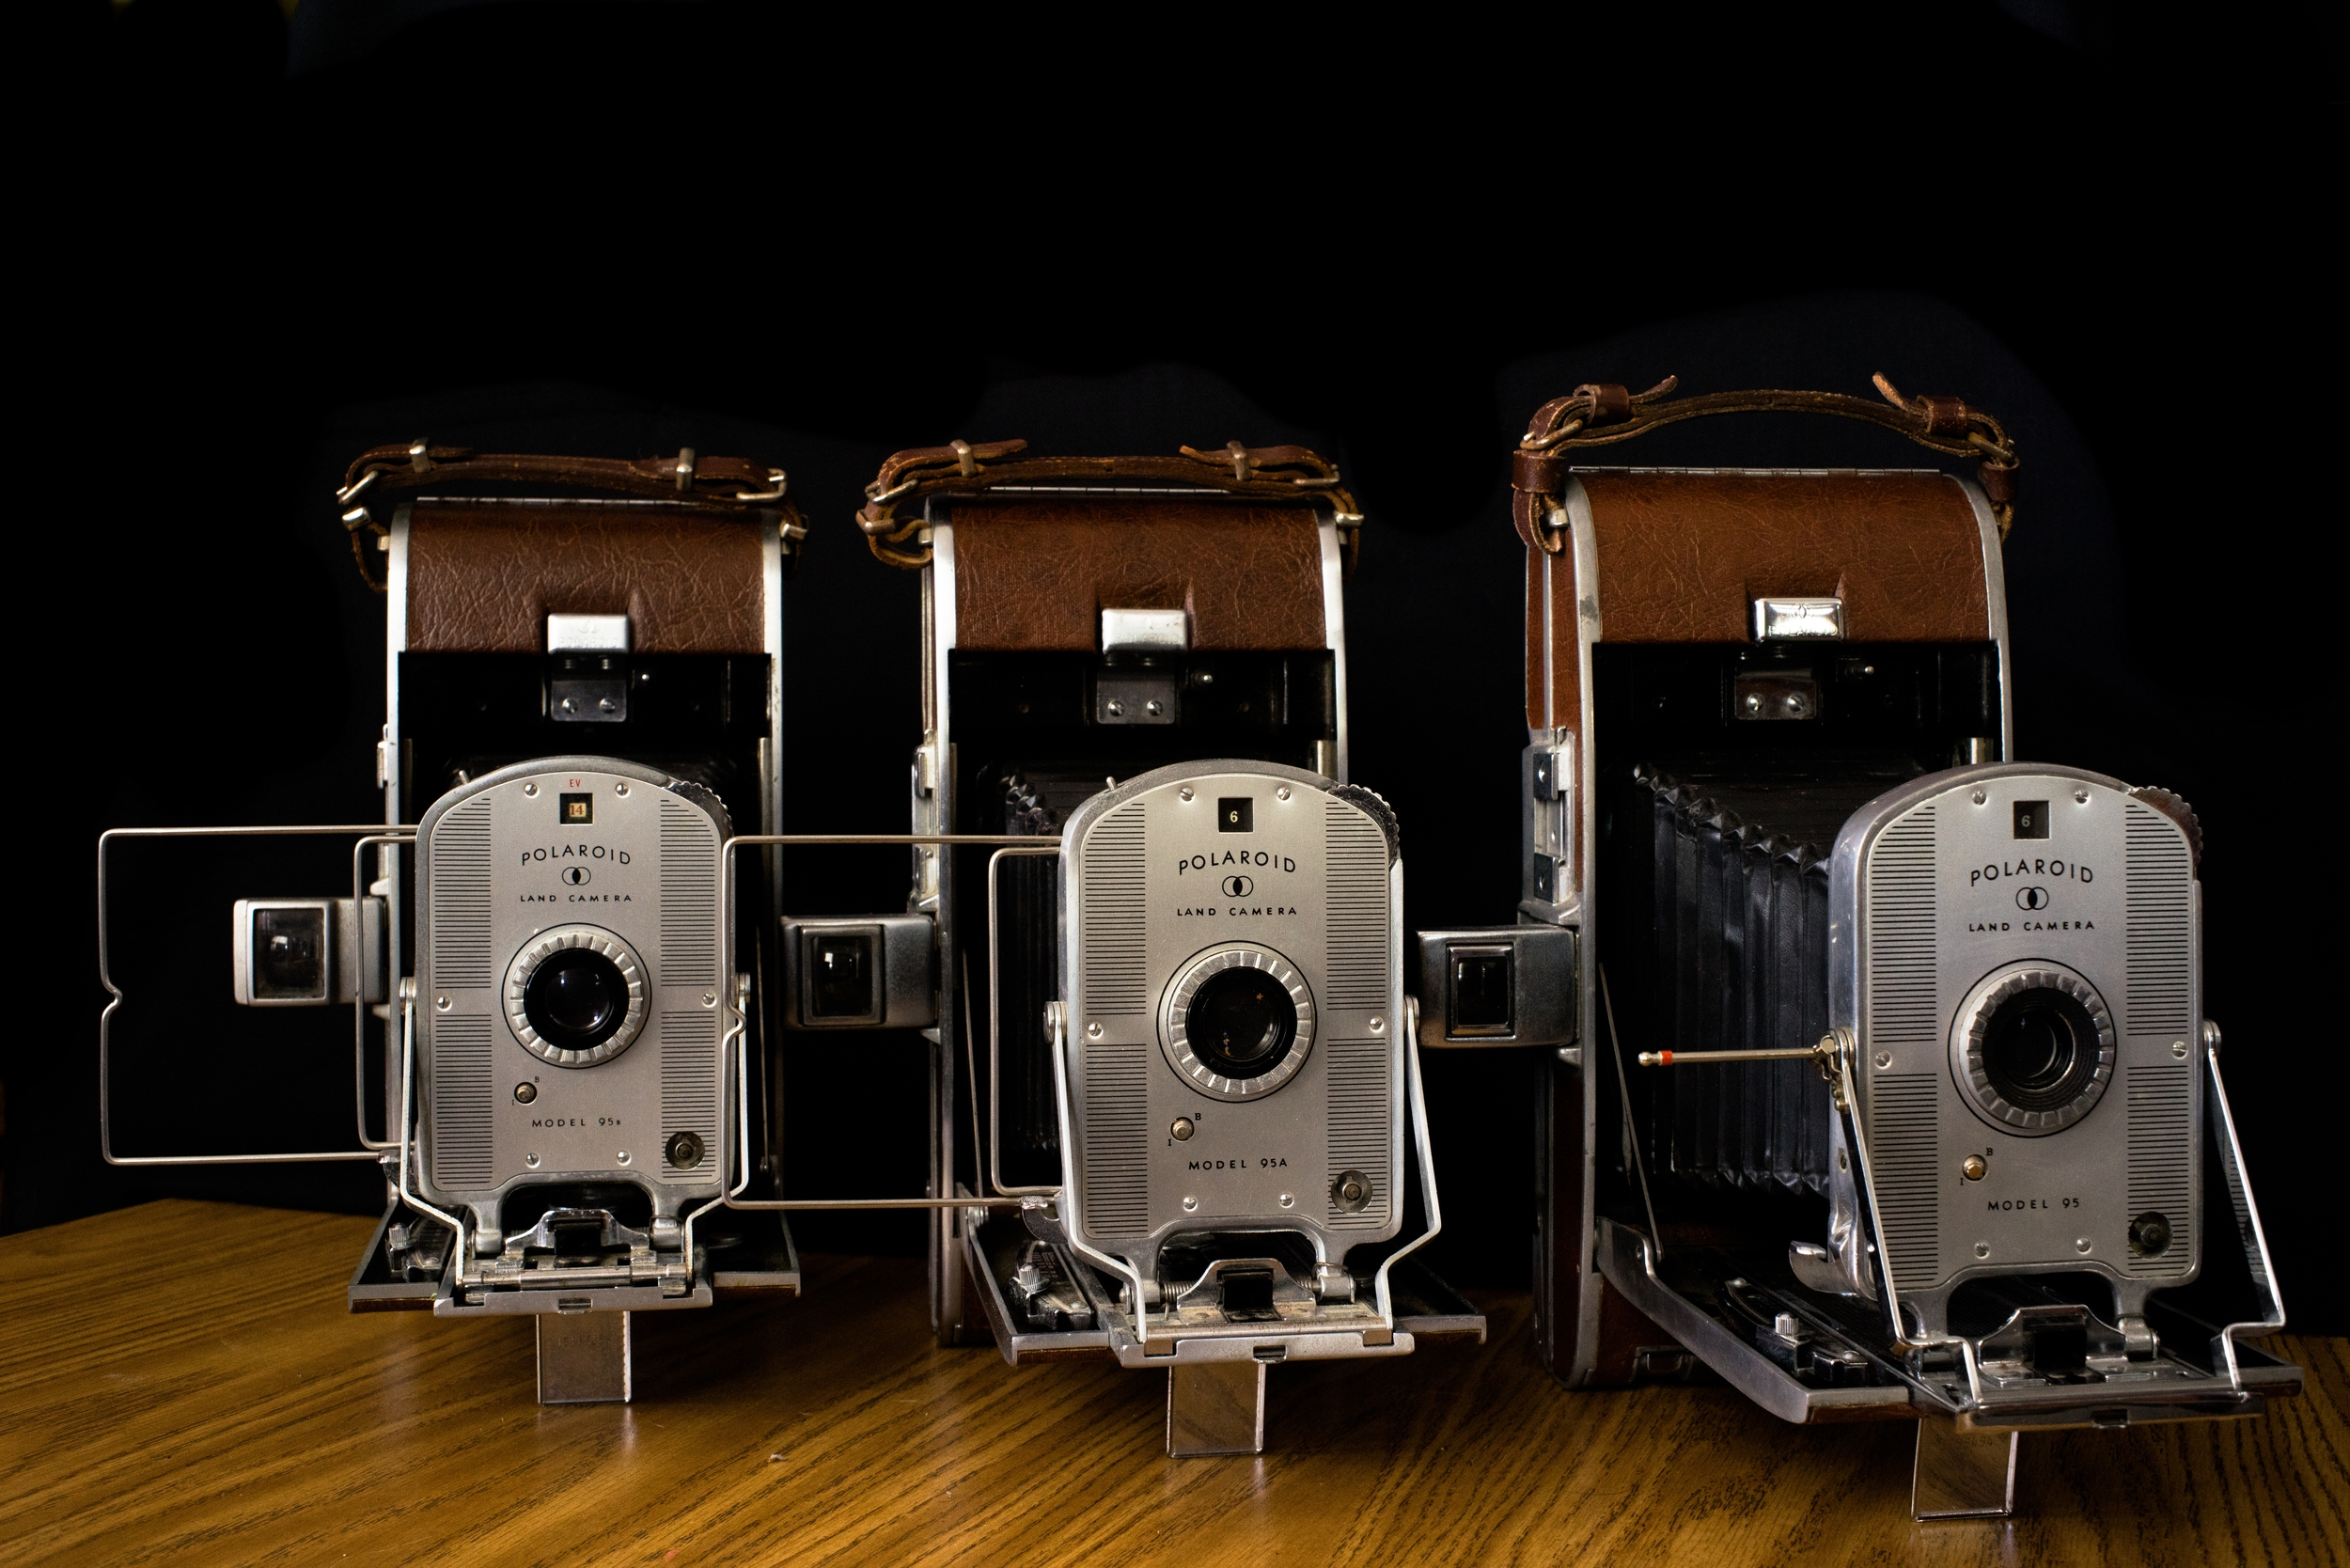 Each of the three Model 95 Land Cameras. (Left to right: 95B, 95A, 95). Each showing slight differences, most notably the view finder.Photo: Trey Takahashi